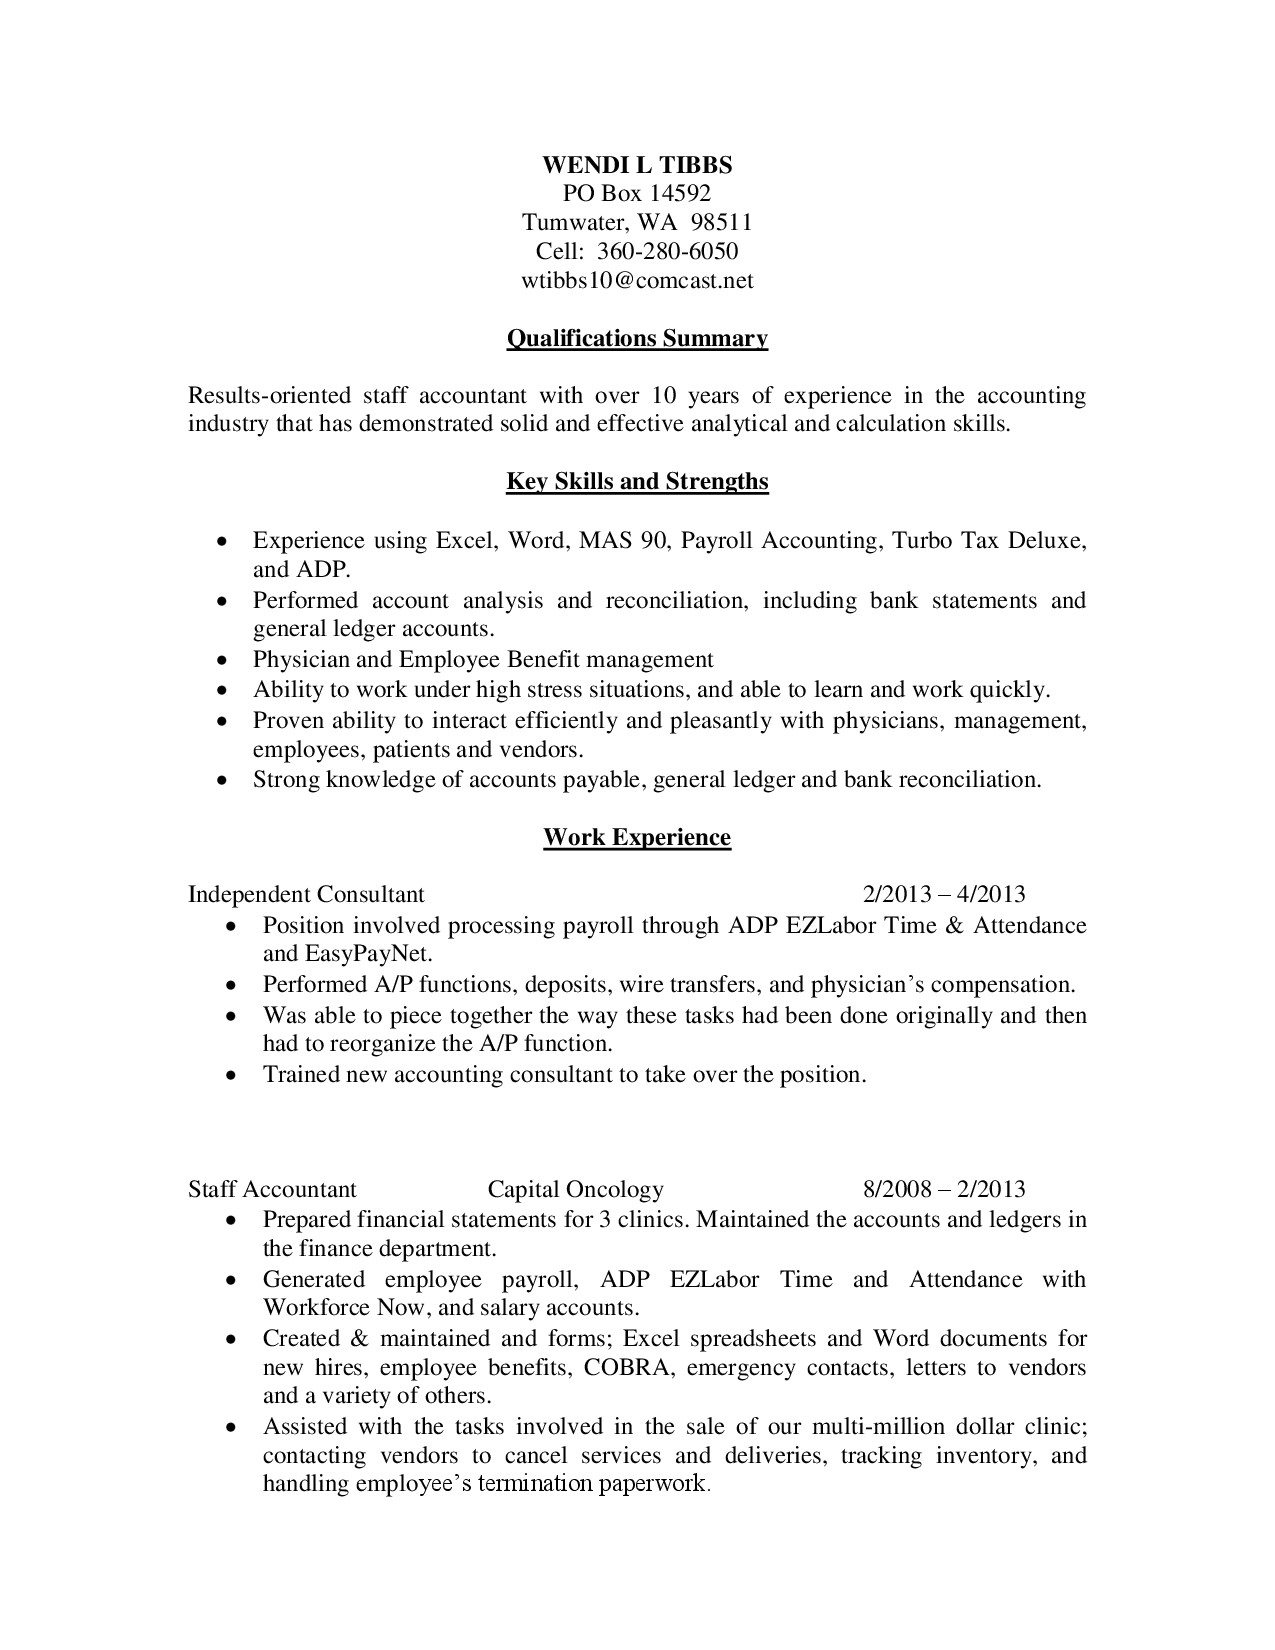 key skills and strengths payroll accounting resume sample job position as staff acc